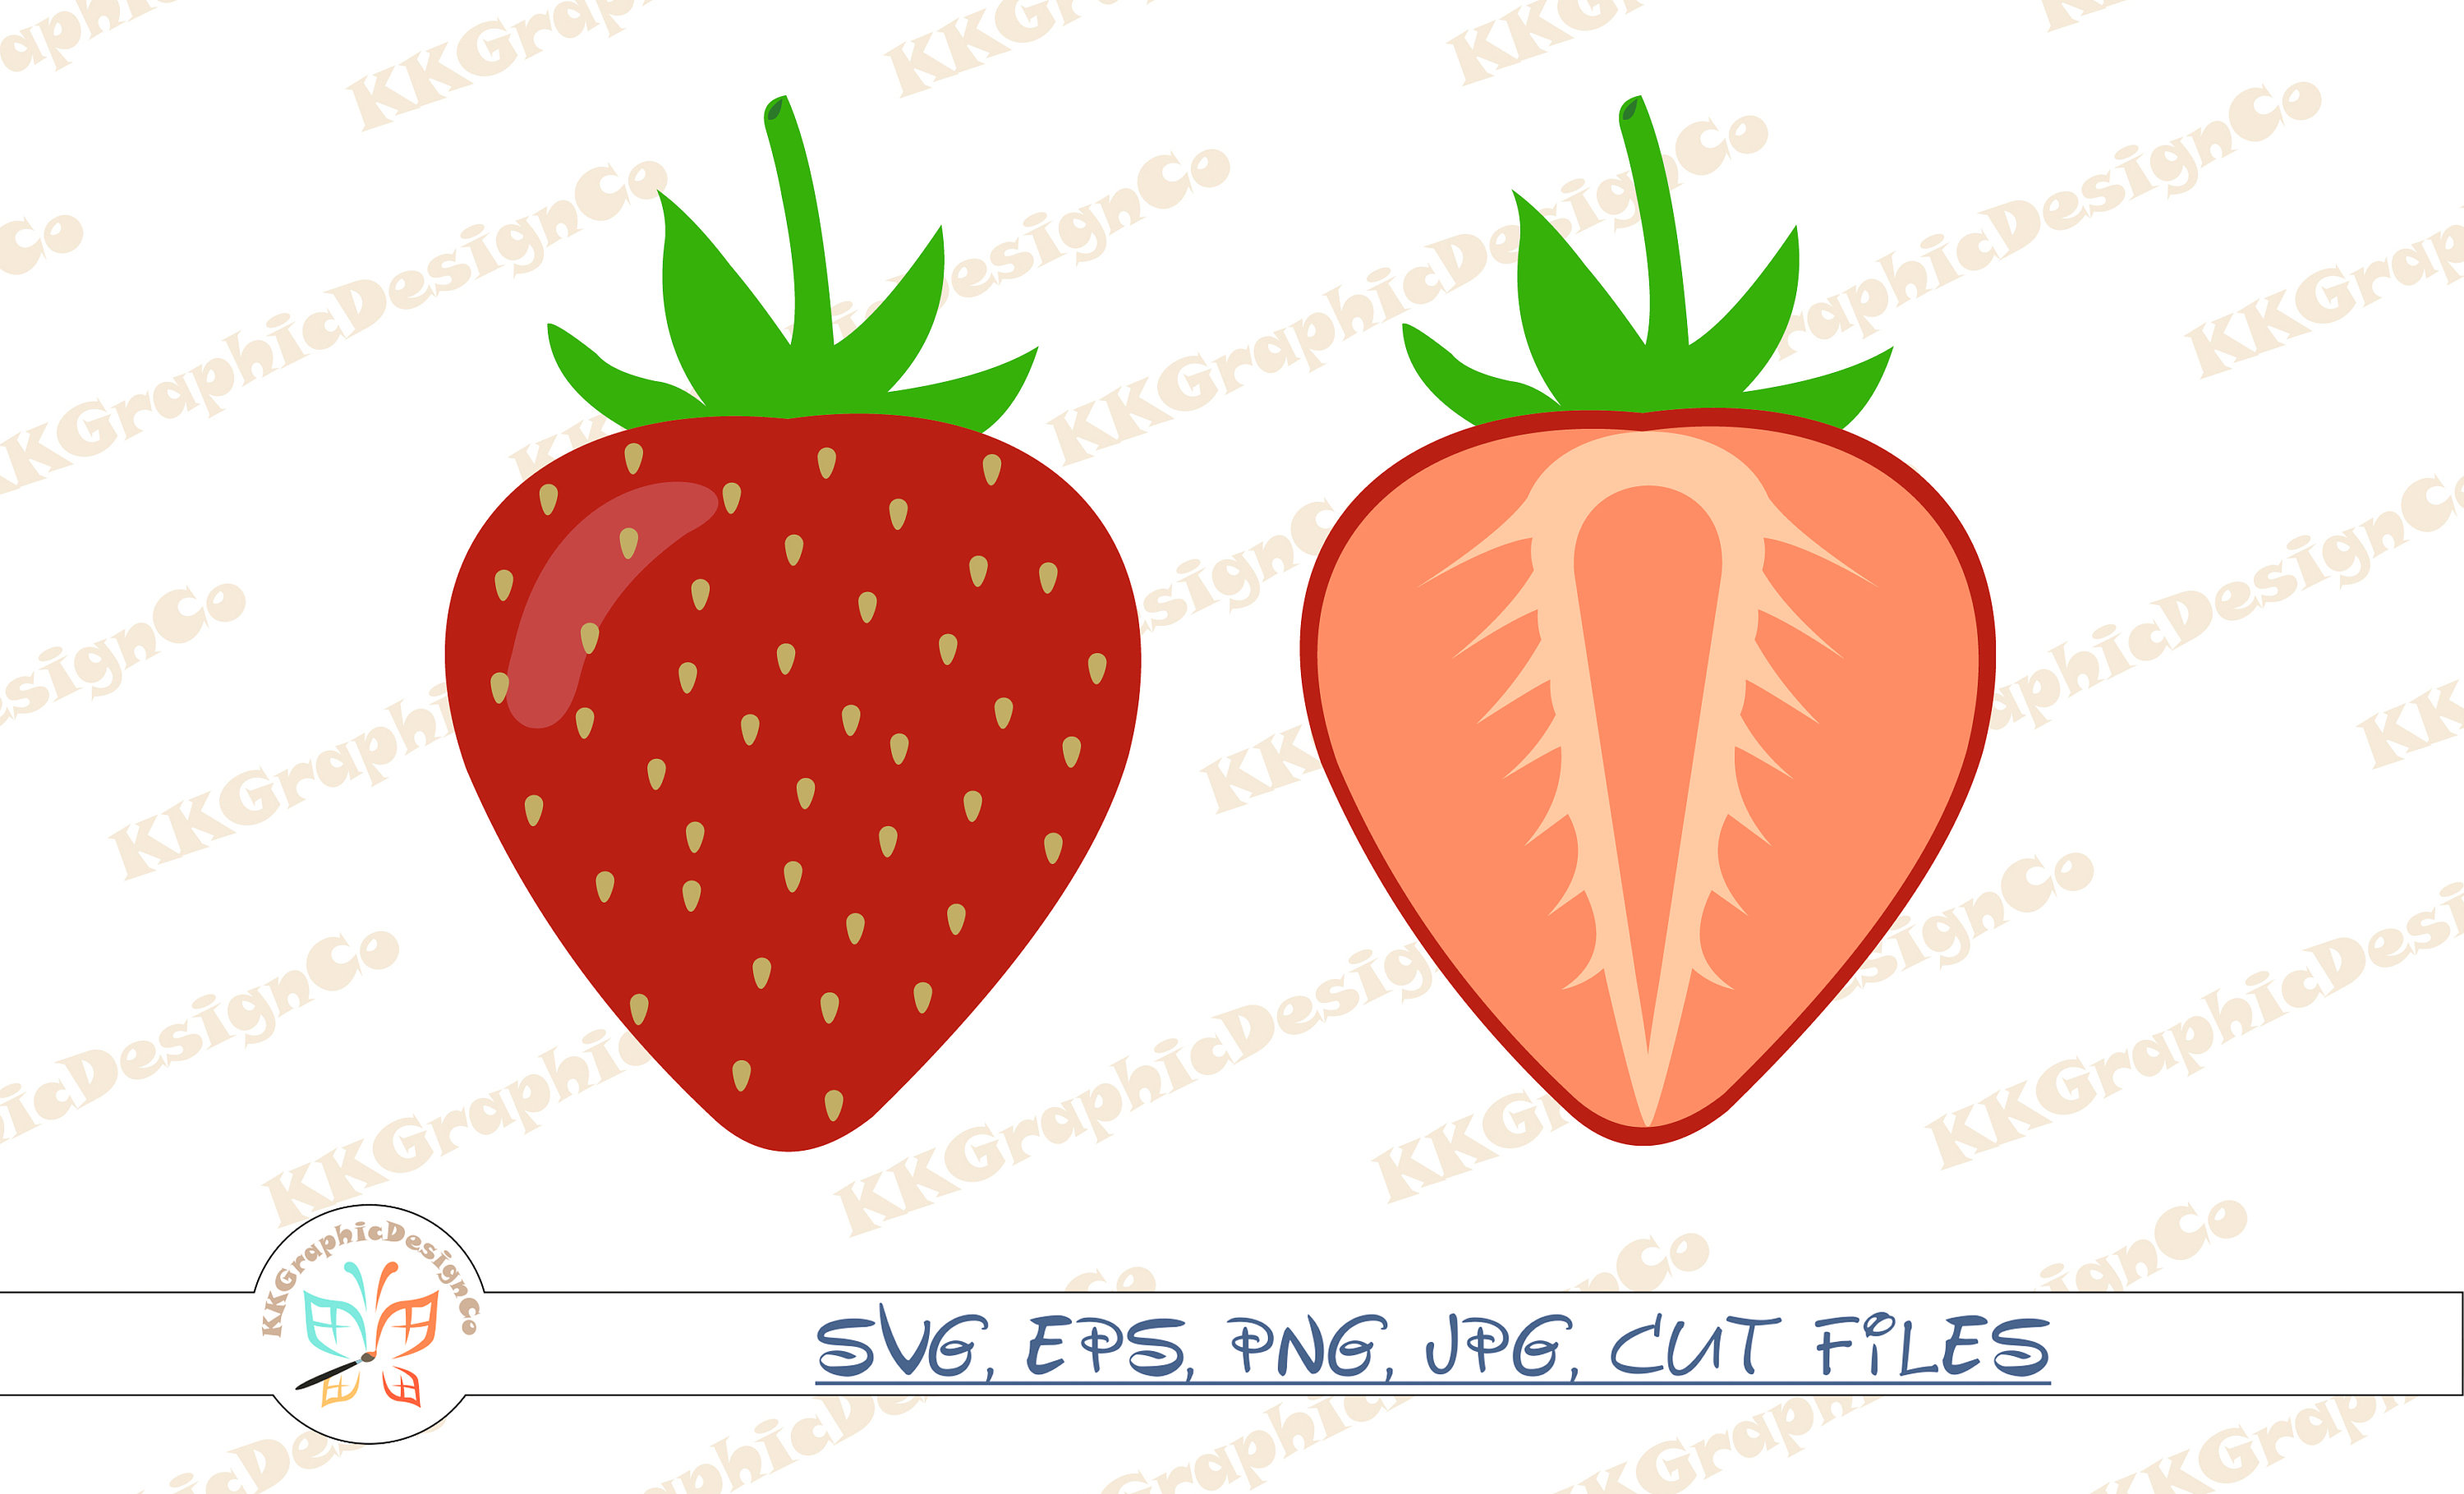 Strawberry cut file png. Strawberries clipart svg